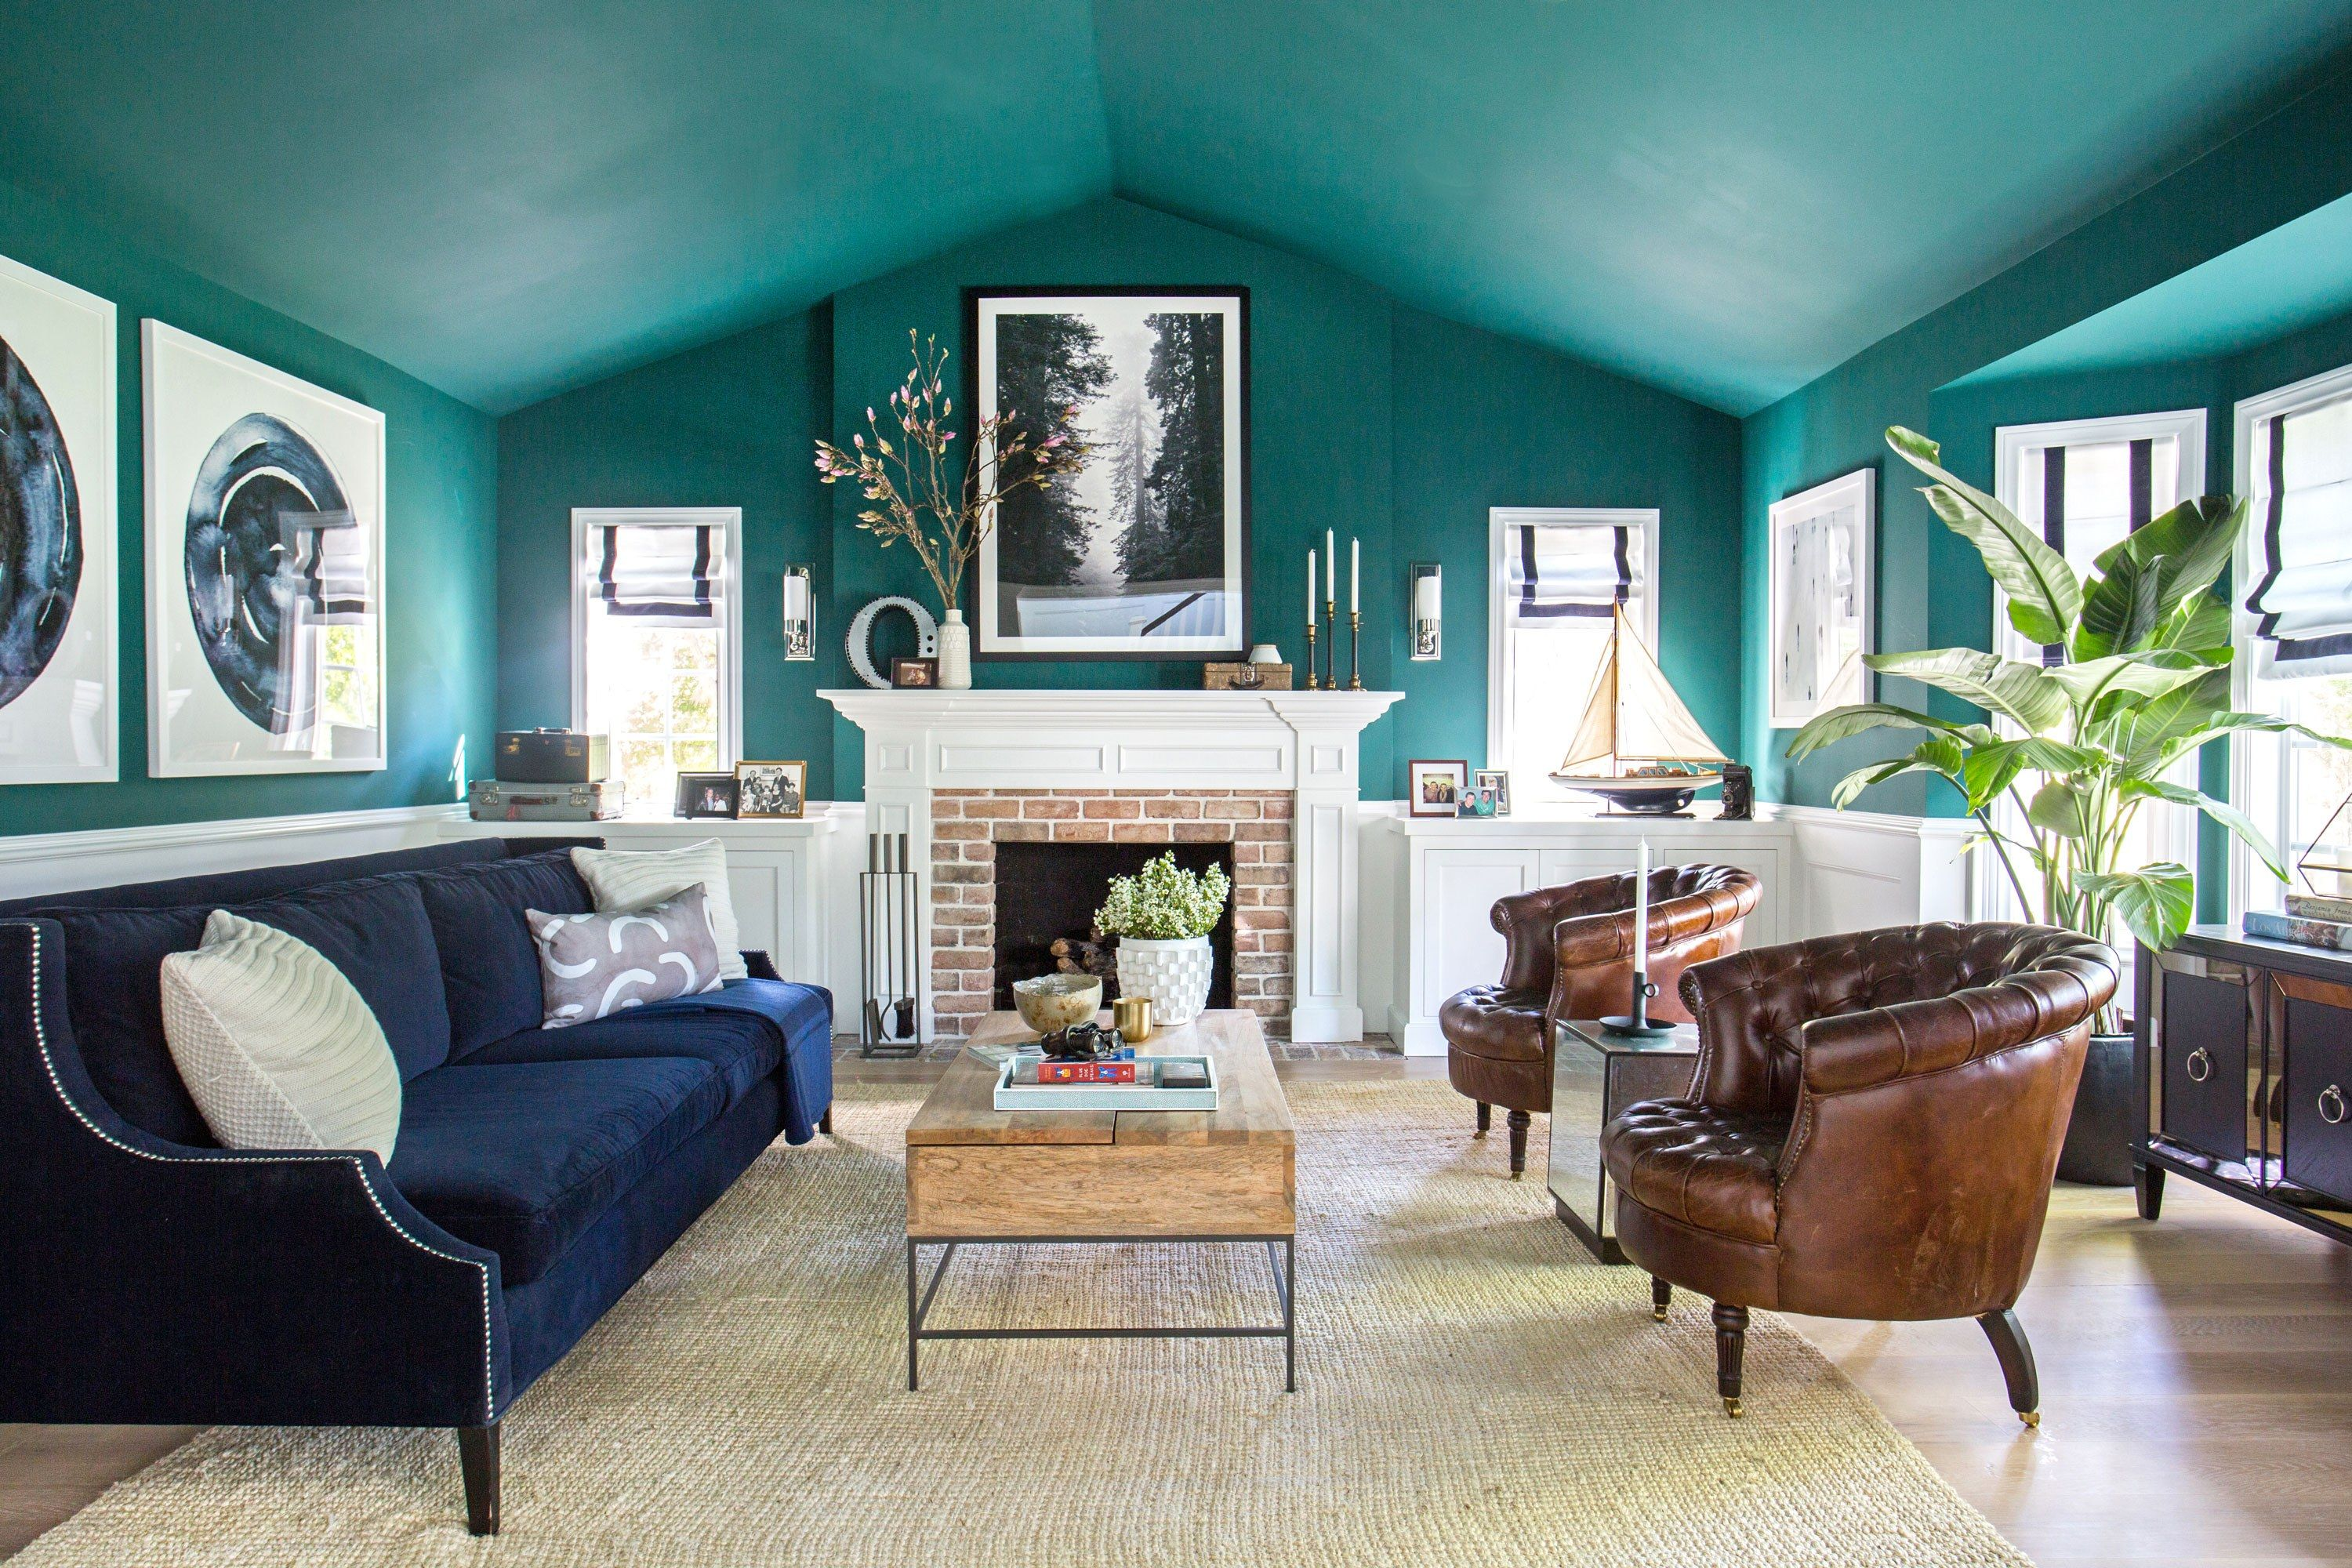 Before & After House Tour: A 1970s Hollywood Hills Home Gets a Classic Renovation